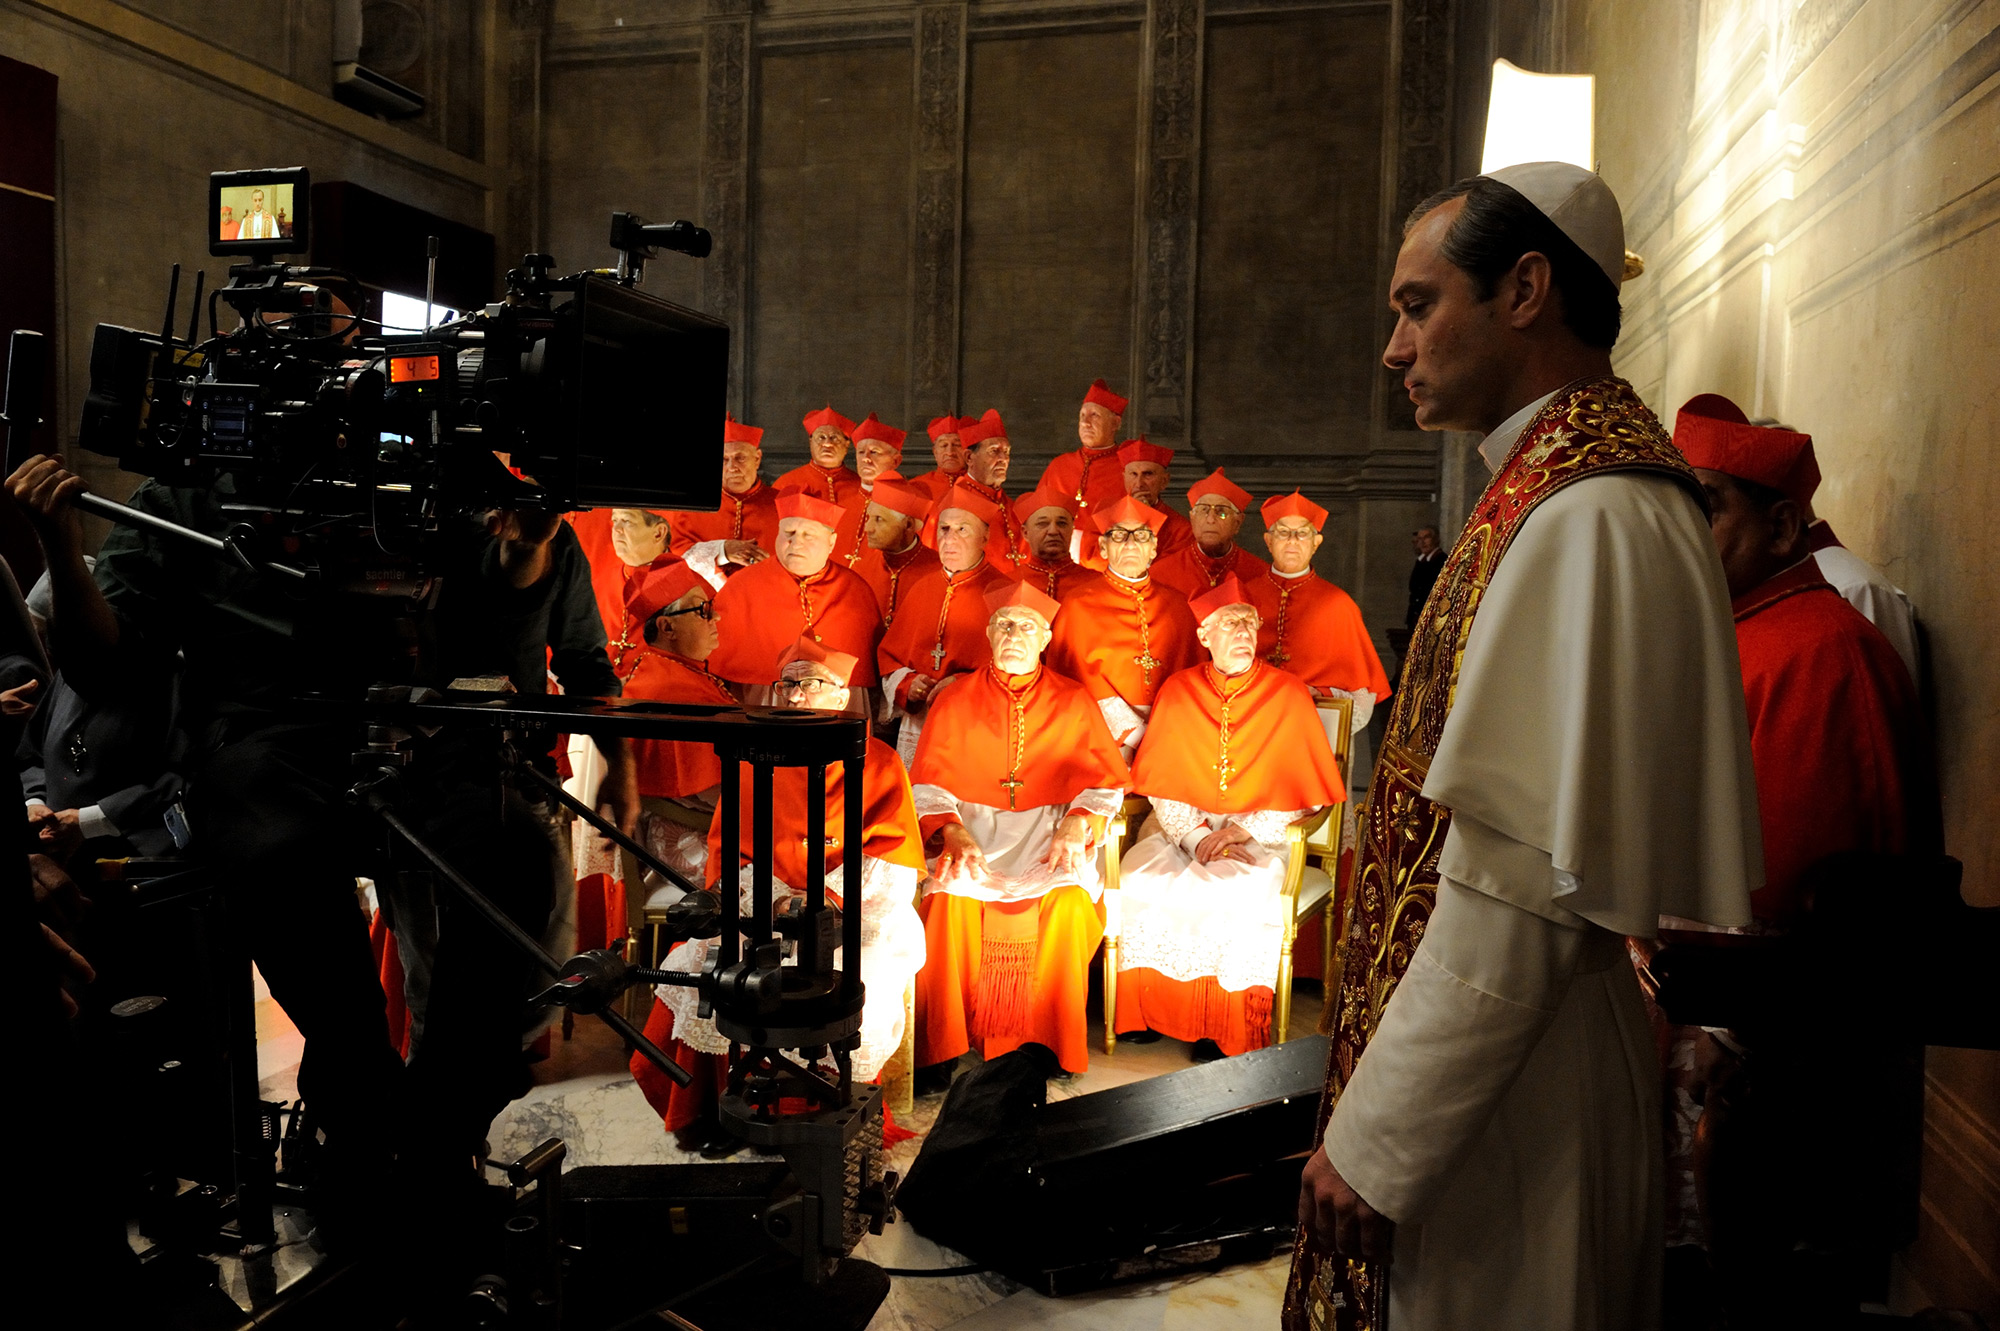 The Young Pope, Paolo Sorrentino, Jude Law, ΤΗΛΕΟΡΑΣΗ, Ο νεαρός Πάπας,